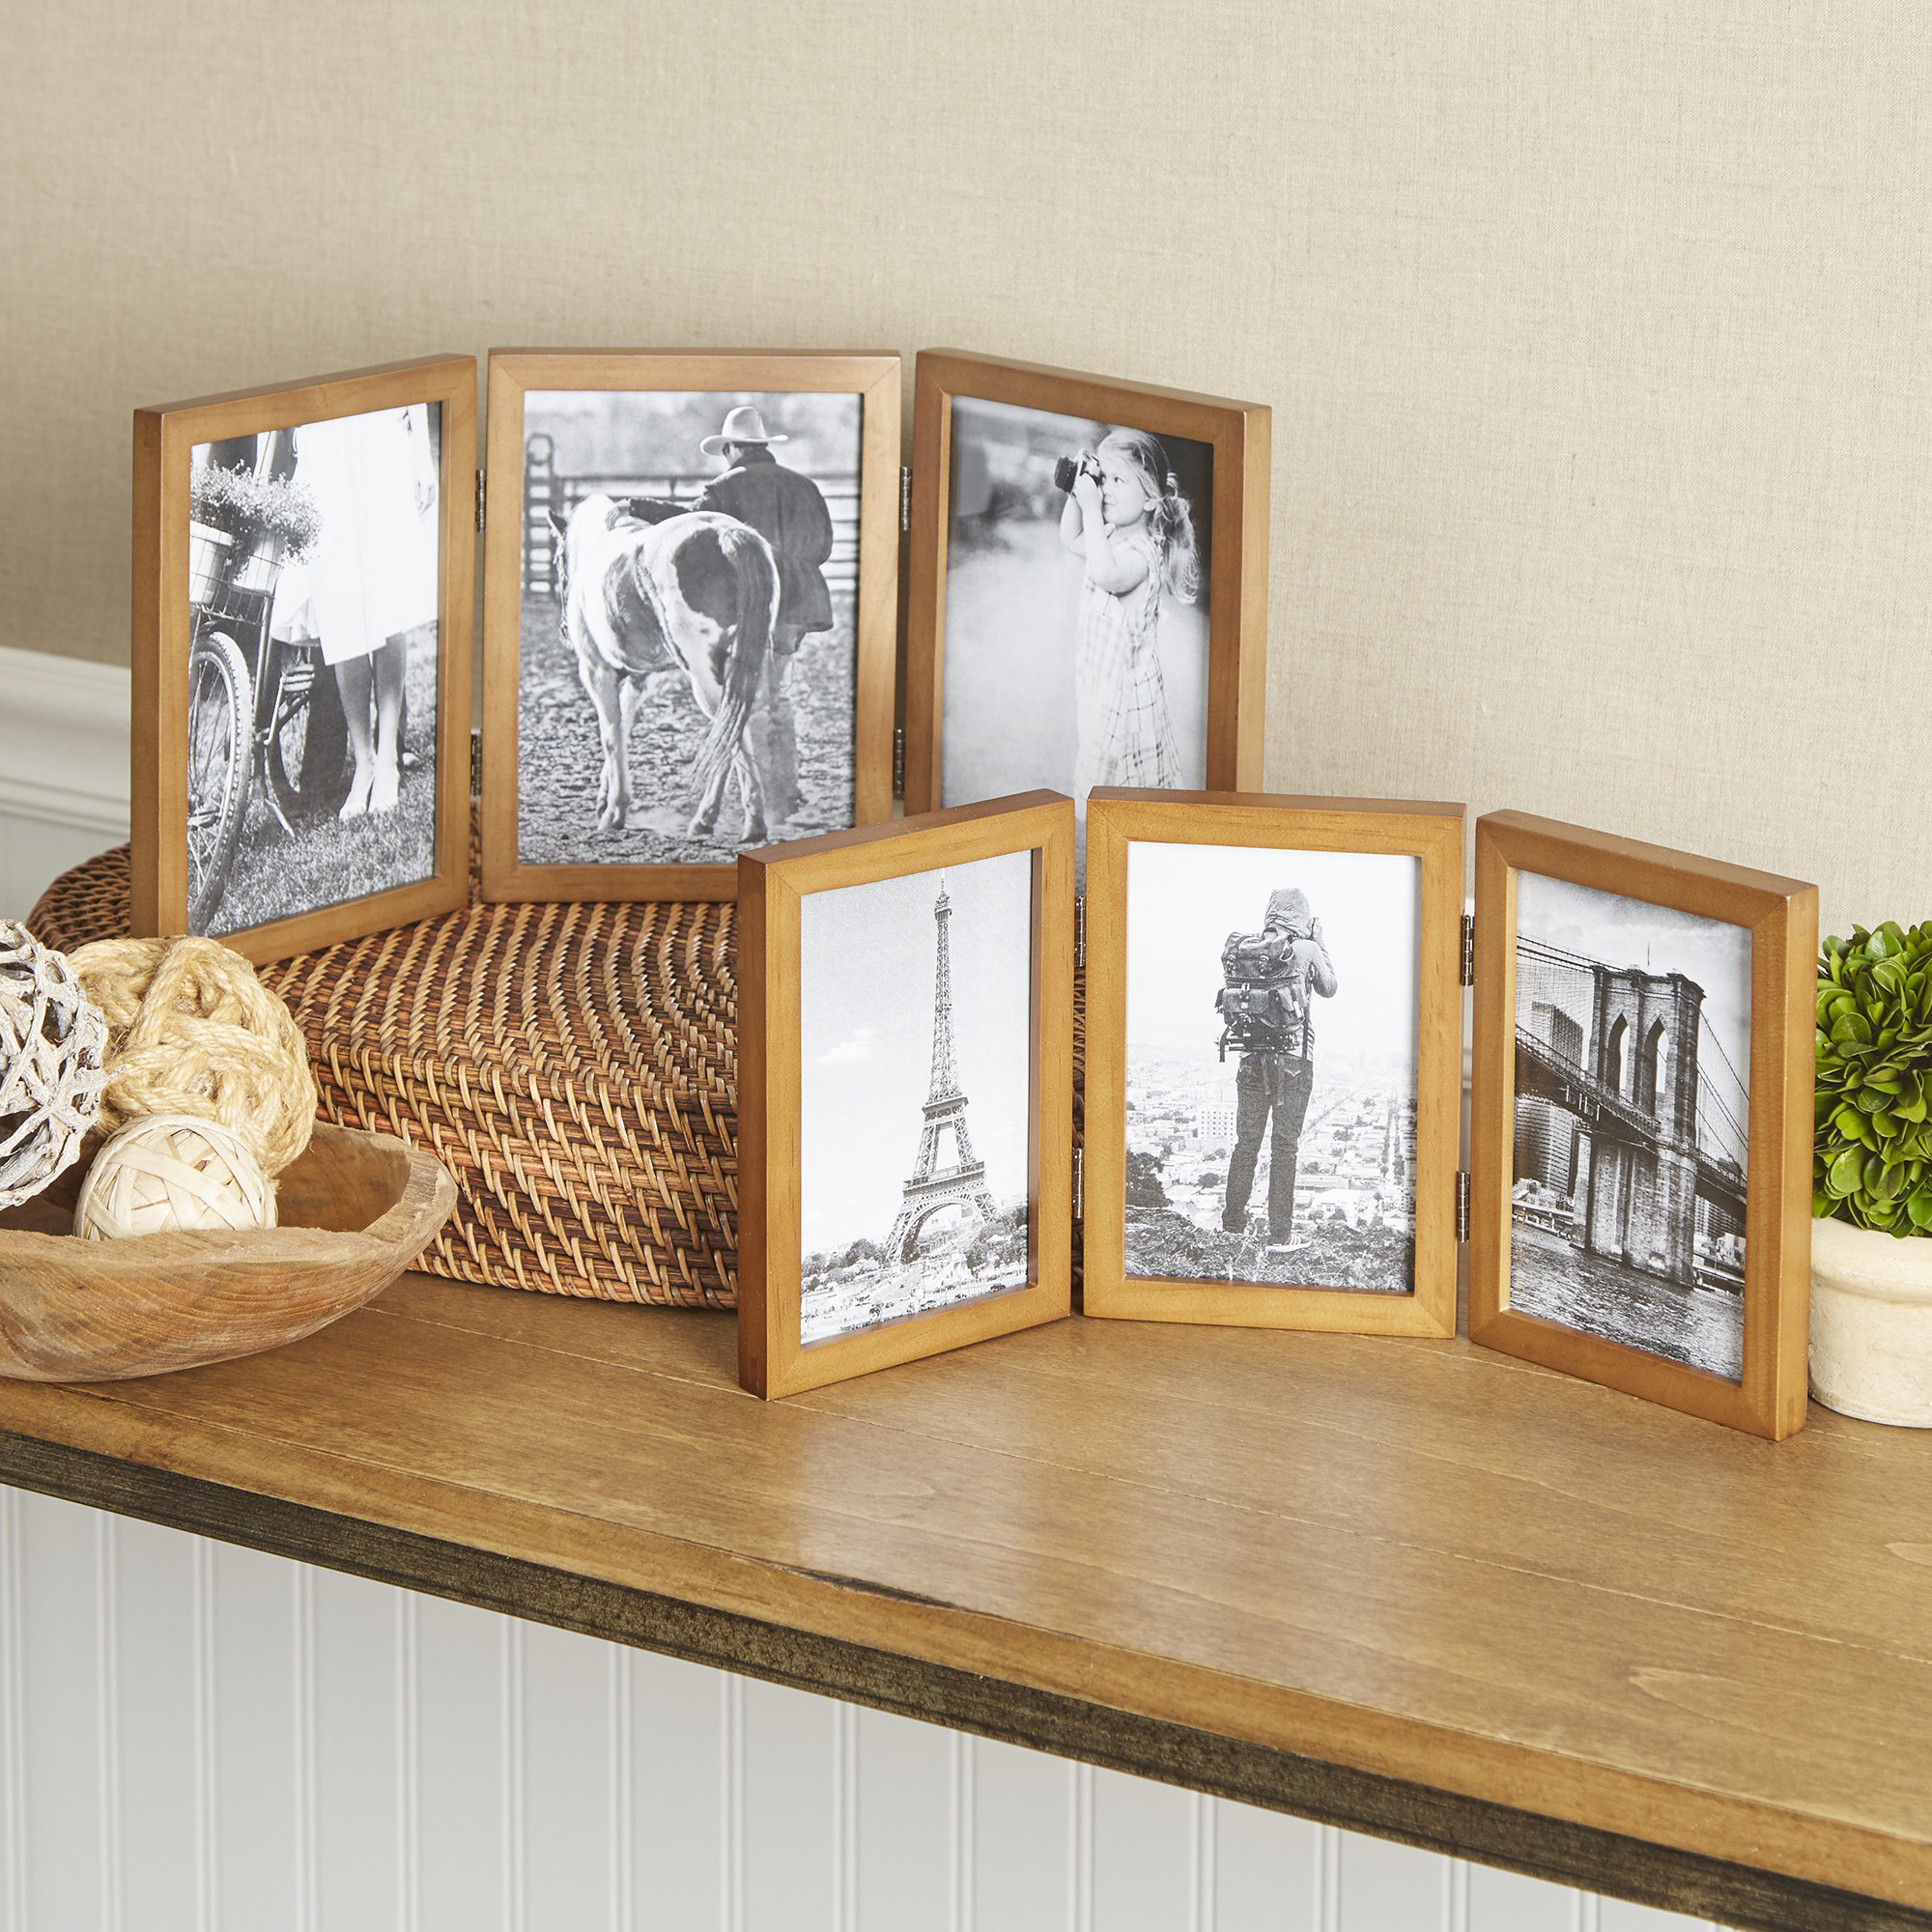 Hinged Triple Picture Frame with regard to Millanocket Metal Wheel Photo Holder Wall Decor (Image 15 of 30)